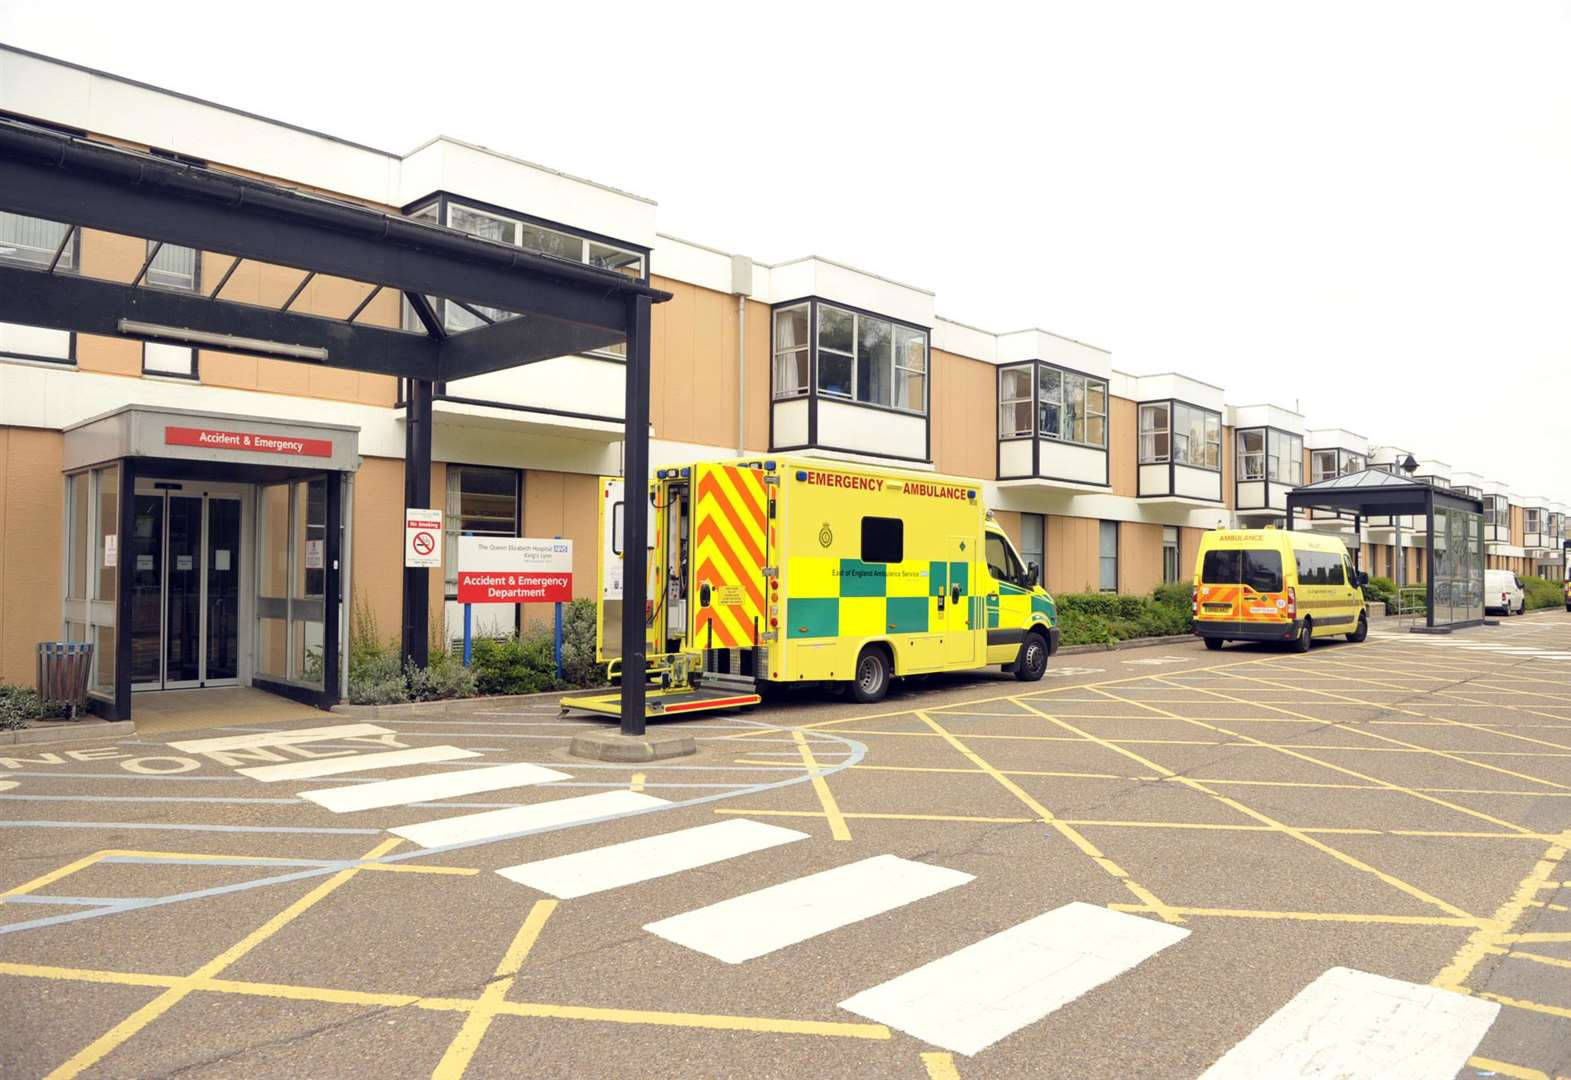 New pilot discharge programme at King's Lynn hospital